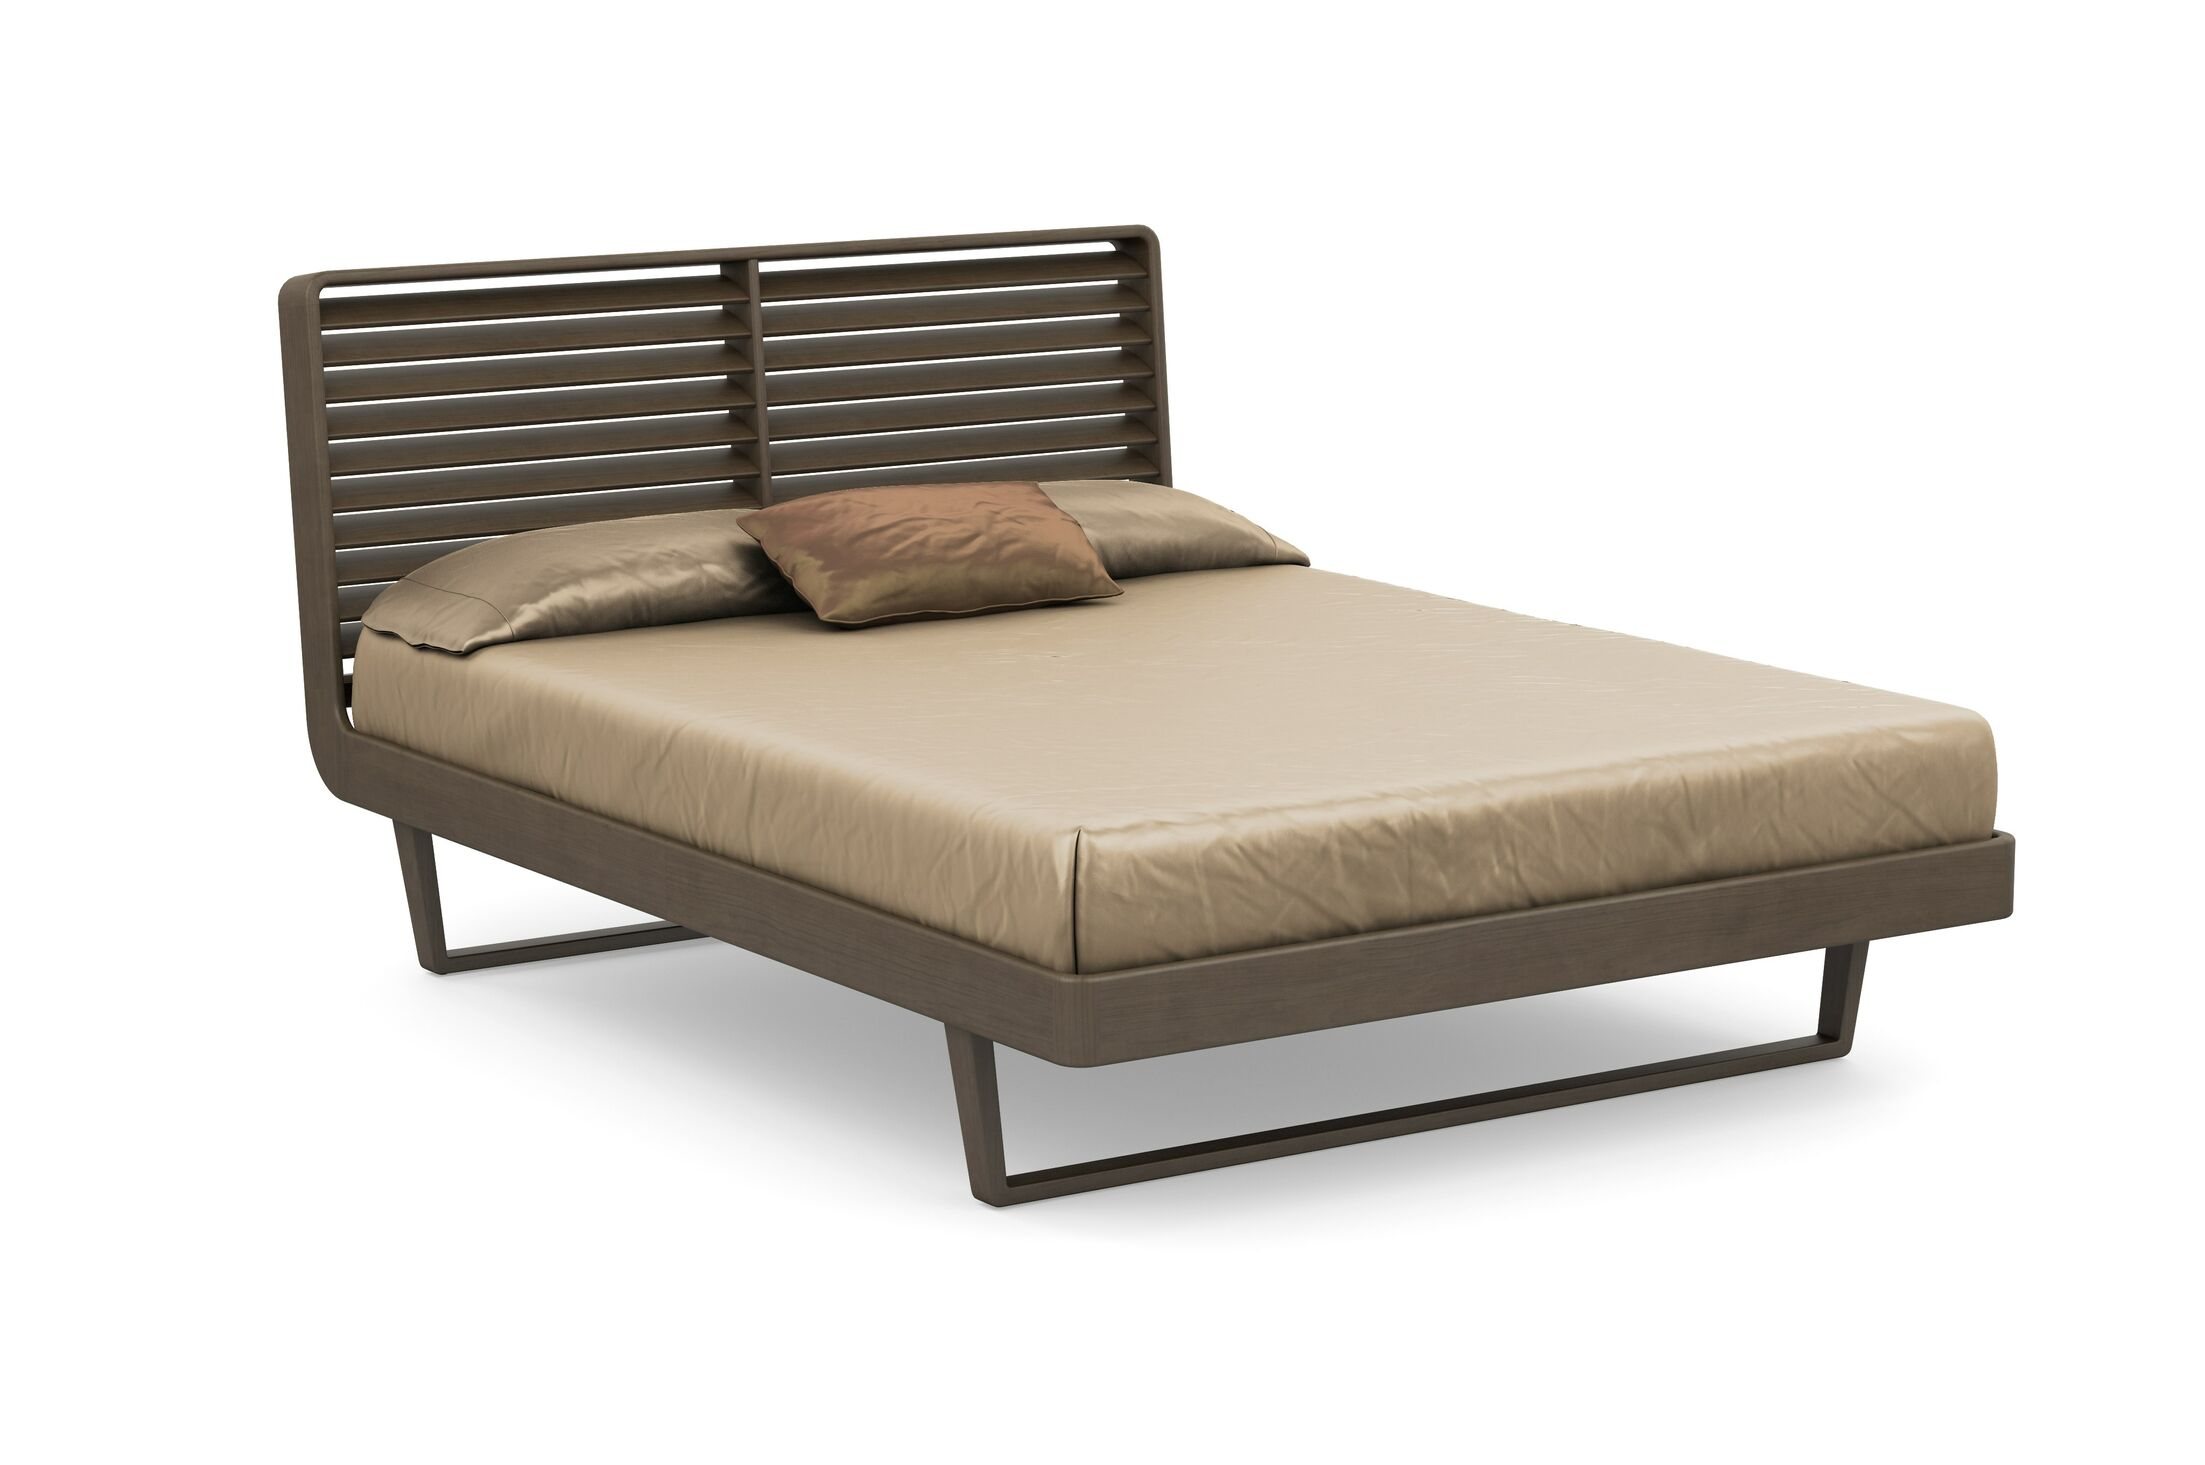 Contour Platform Bed Size: Queen, Color: Taupe Ash